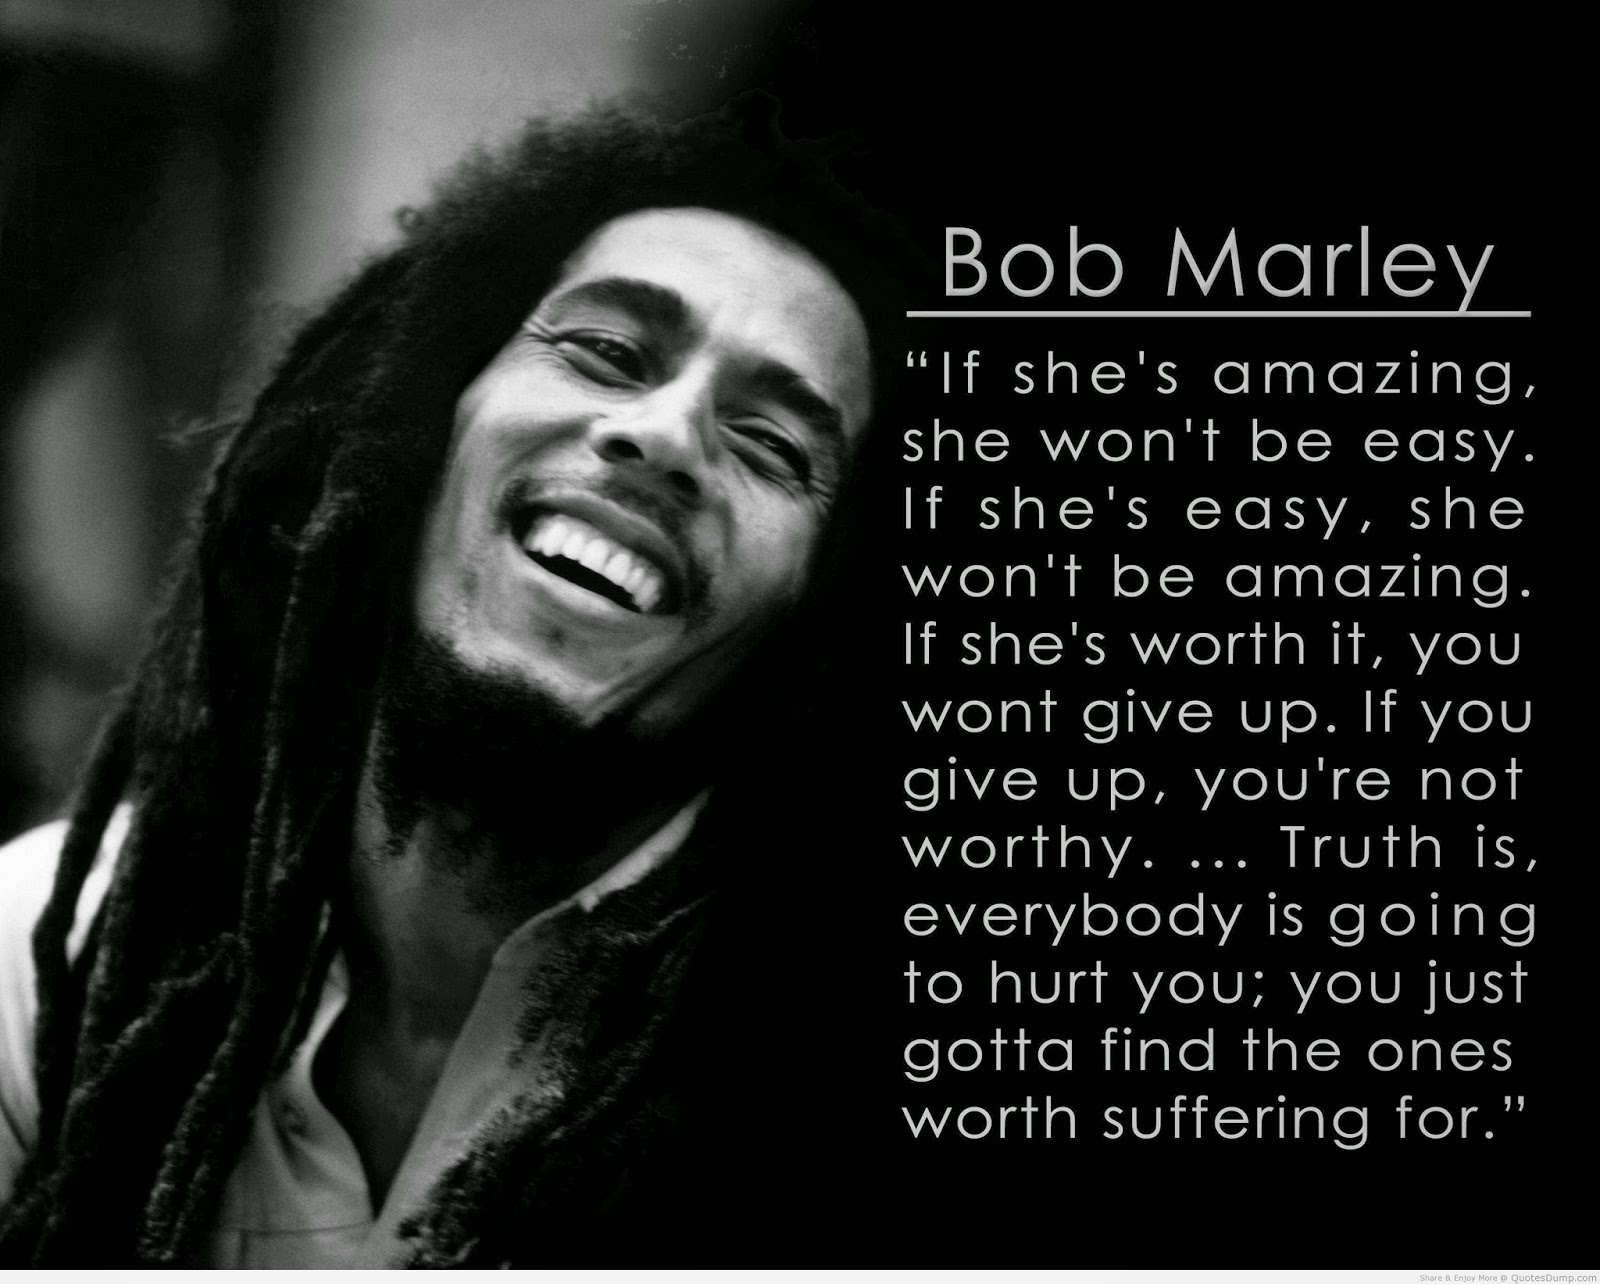 Popular Quotes About Friendship Best All In One Quotes Beautiful And Famous Quotesbob Marley